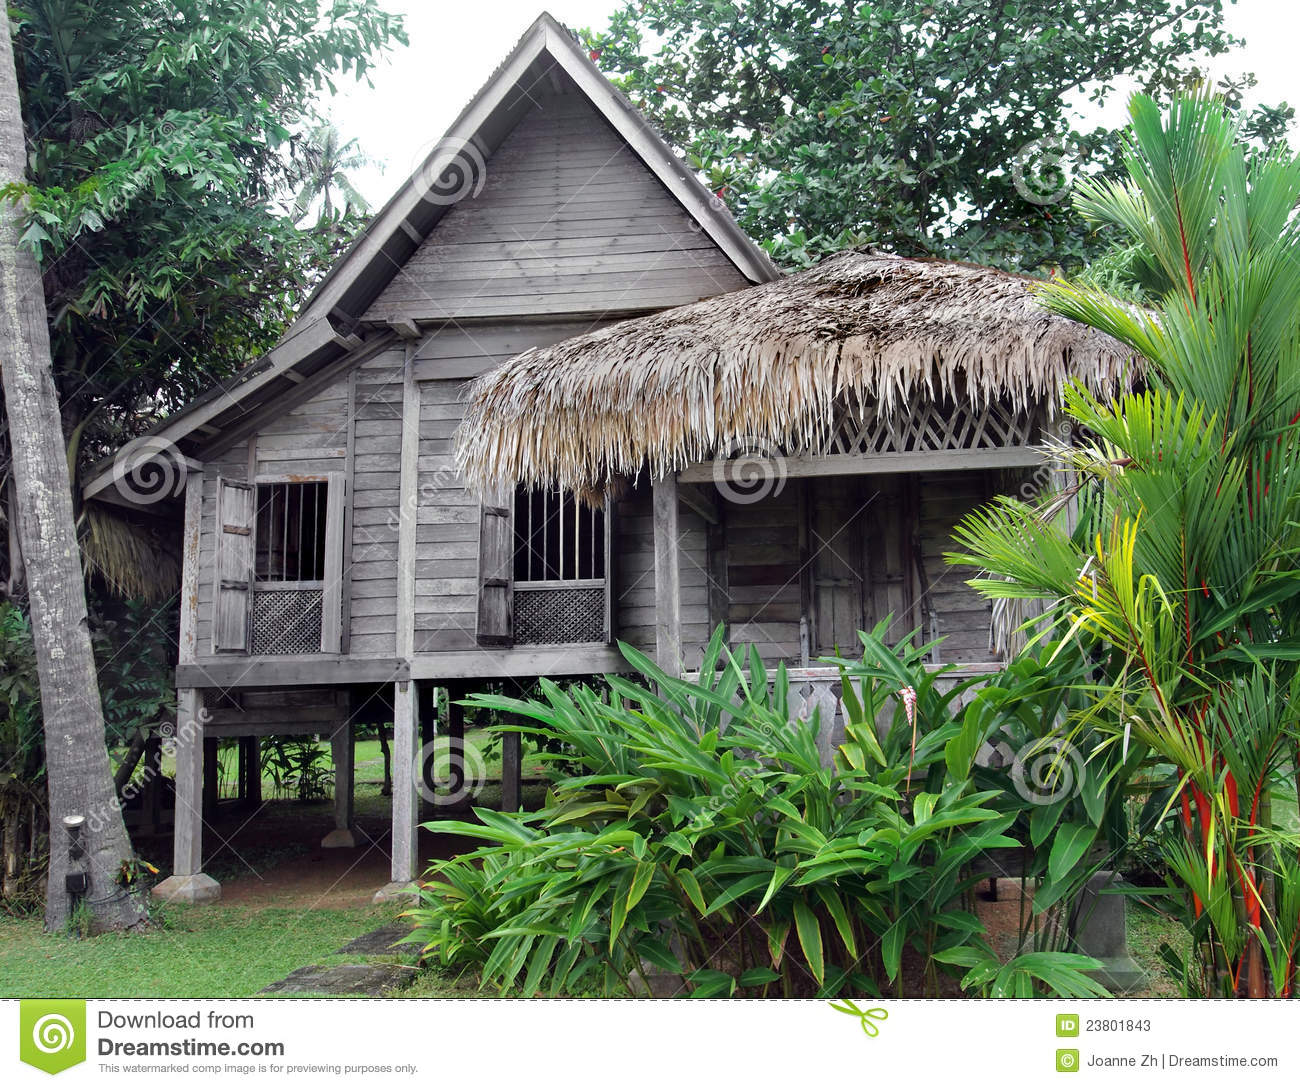 Ethnic Houses : Ethnic Rural Southeast Asian House On Stilts Stock Photos - Image ...